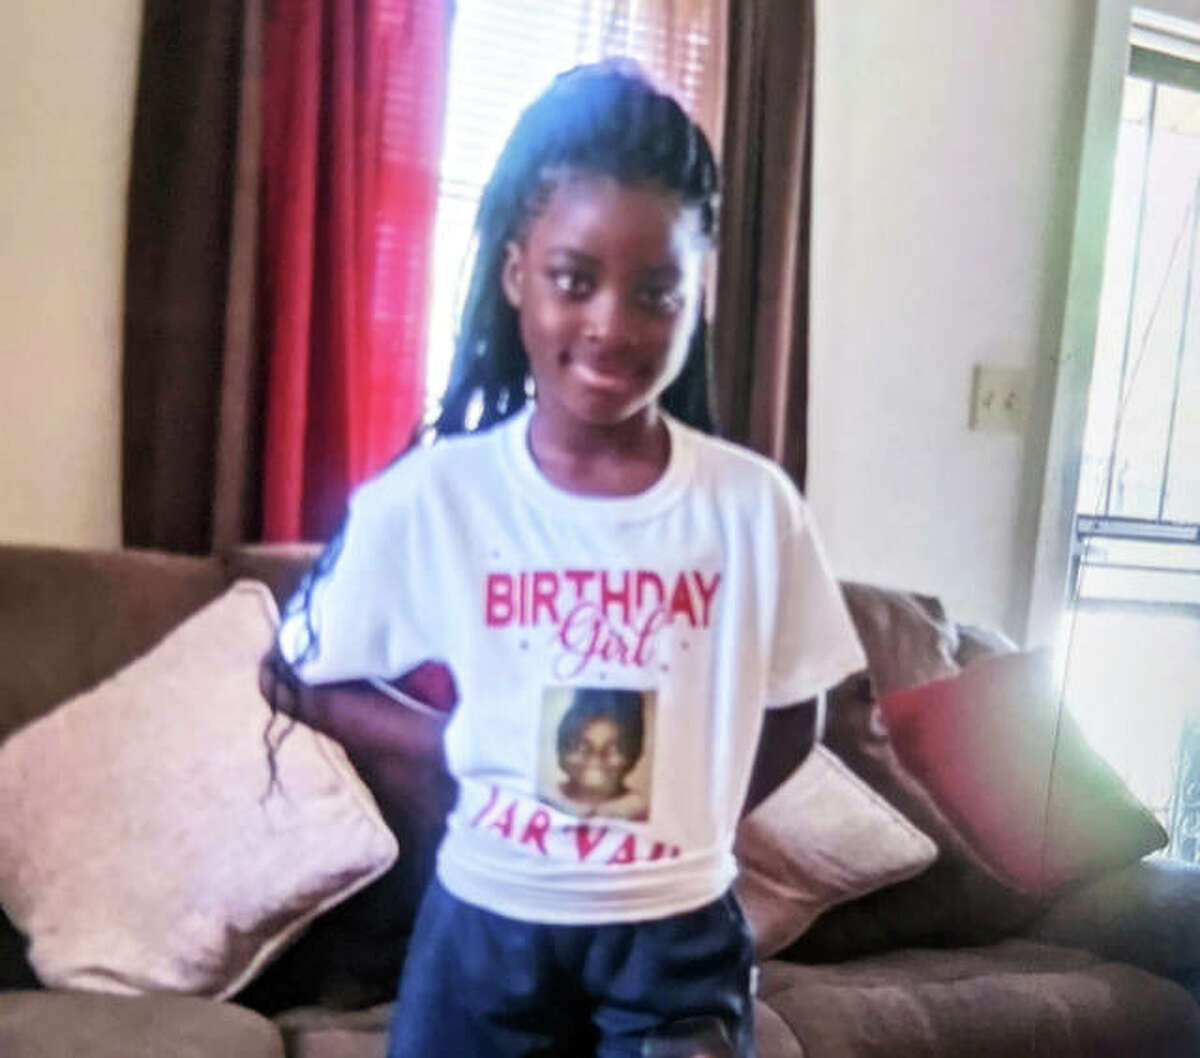 Edwardsville police are seeking 9-year-old Jarvah White, who is reported as missing.